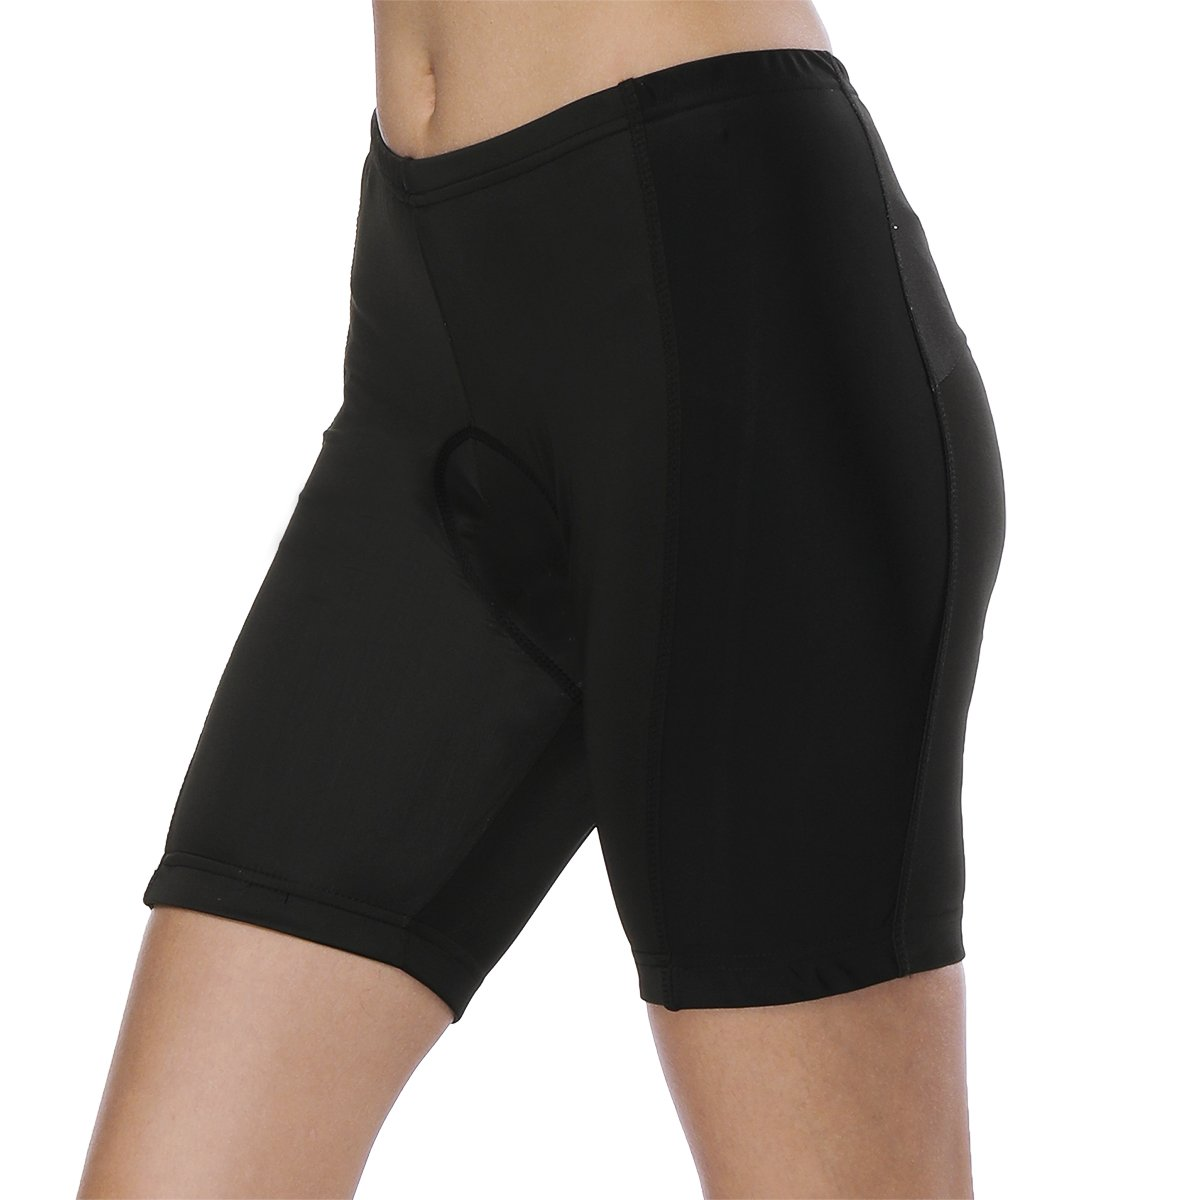 Womens Bike Shorts for Cycling with 3D Padded Pink Ride Women Cycling Shorts Black S